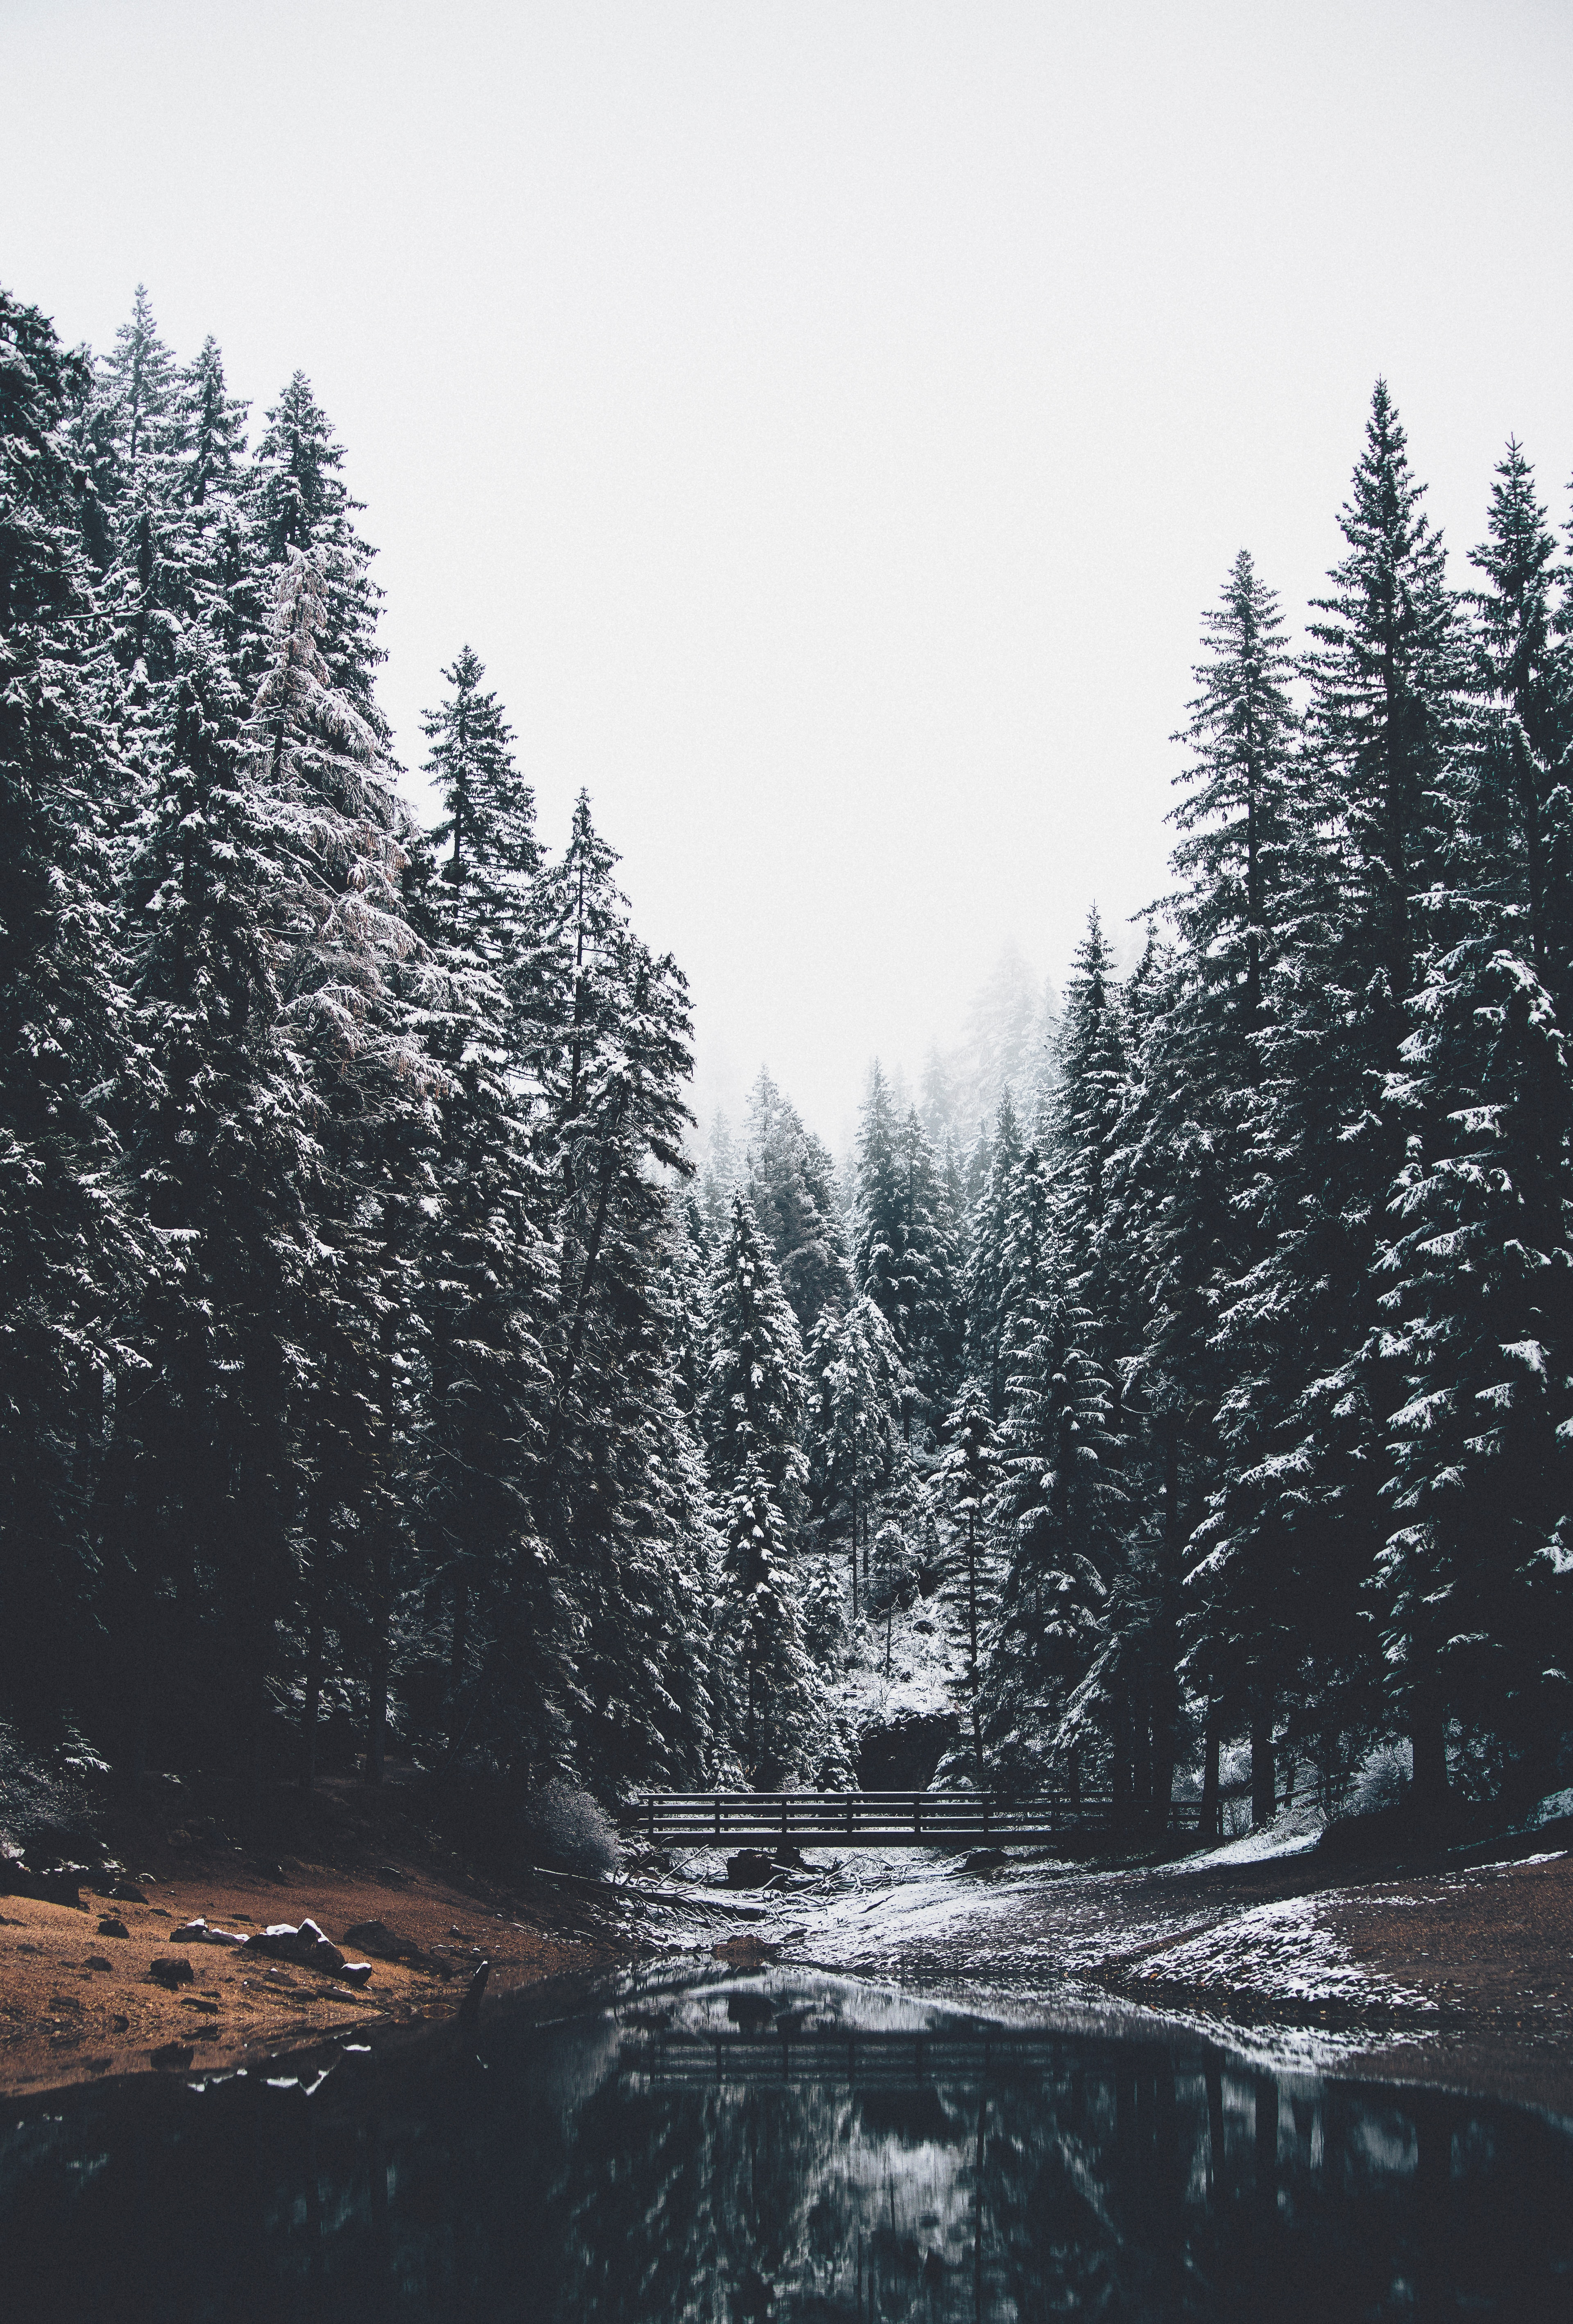 79929 free wallpaper 1080x2400 for phone, download images Landscape, Nature, Rivers, Pine, Snow, Forest, Bridge 1080x2400 for mobile